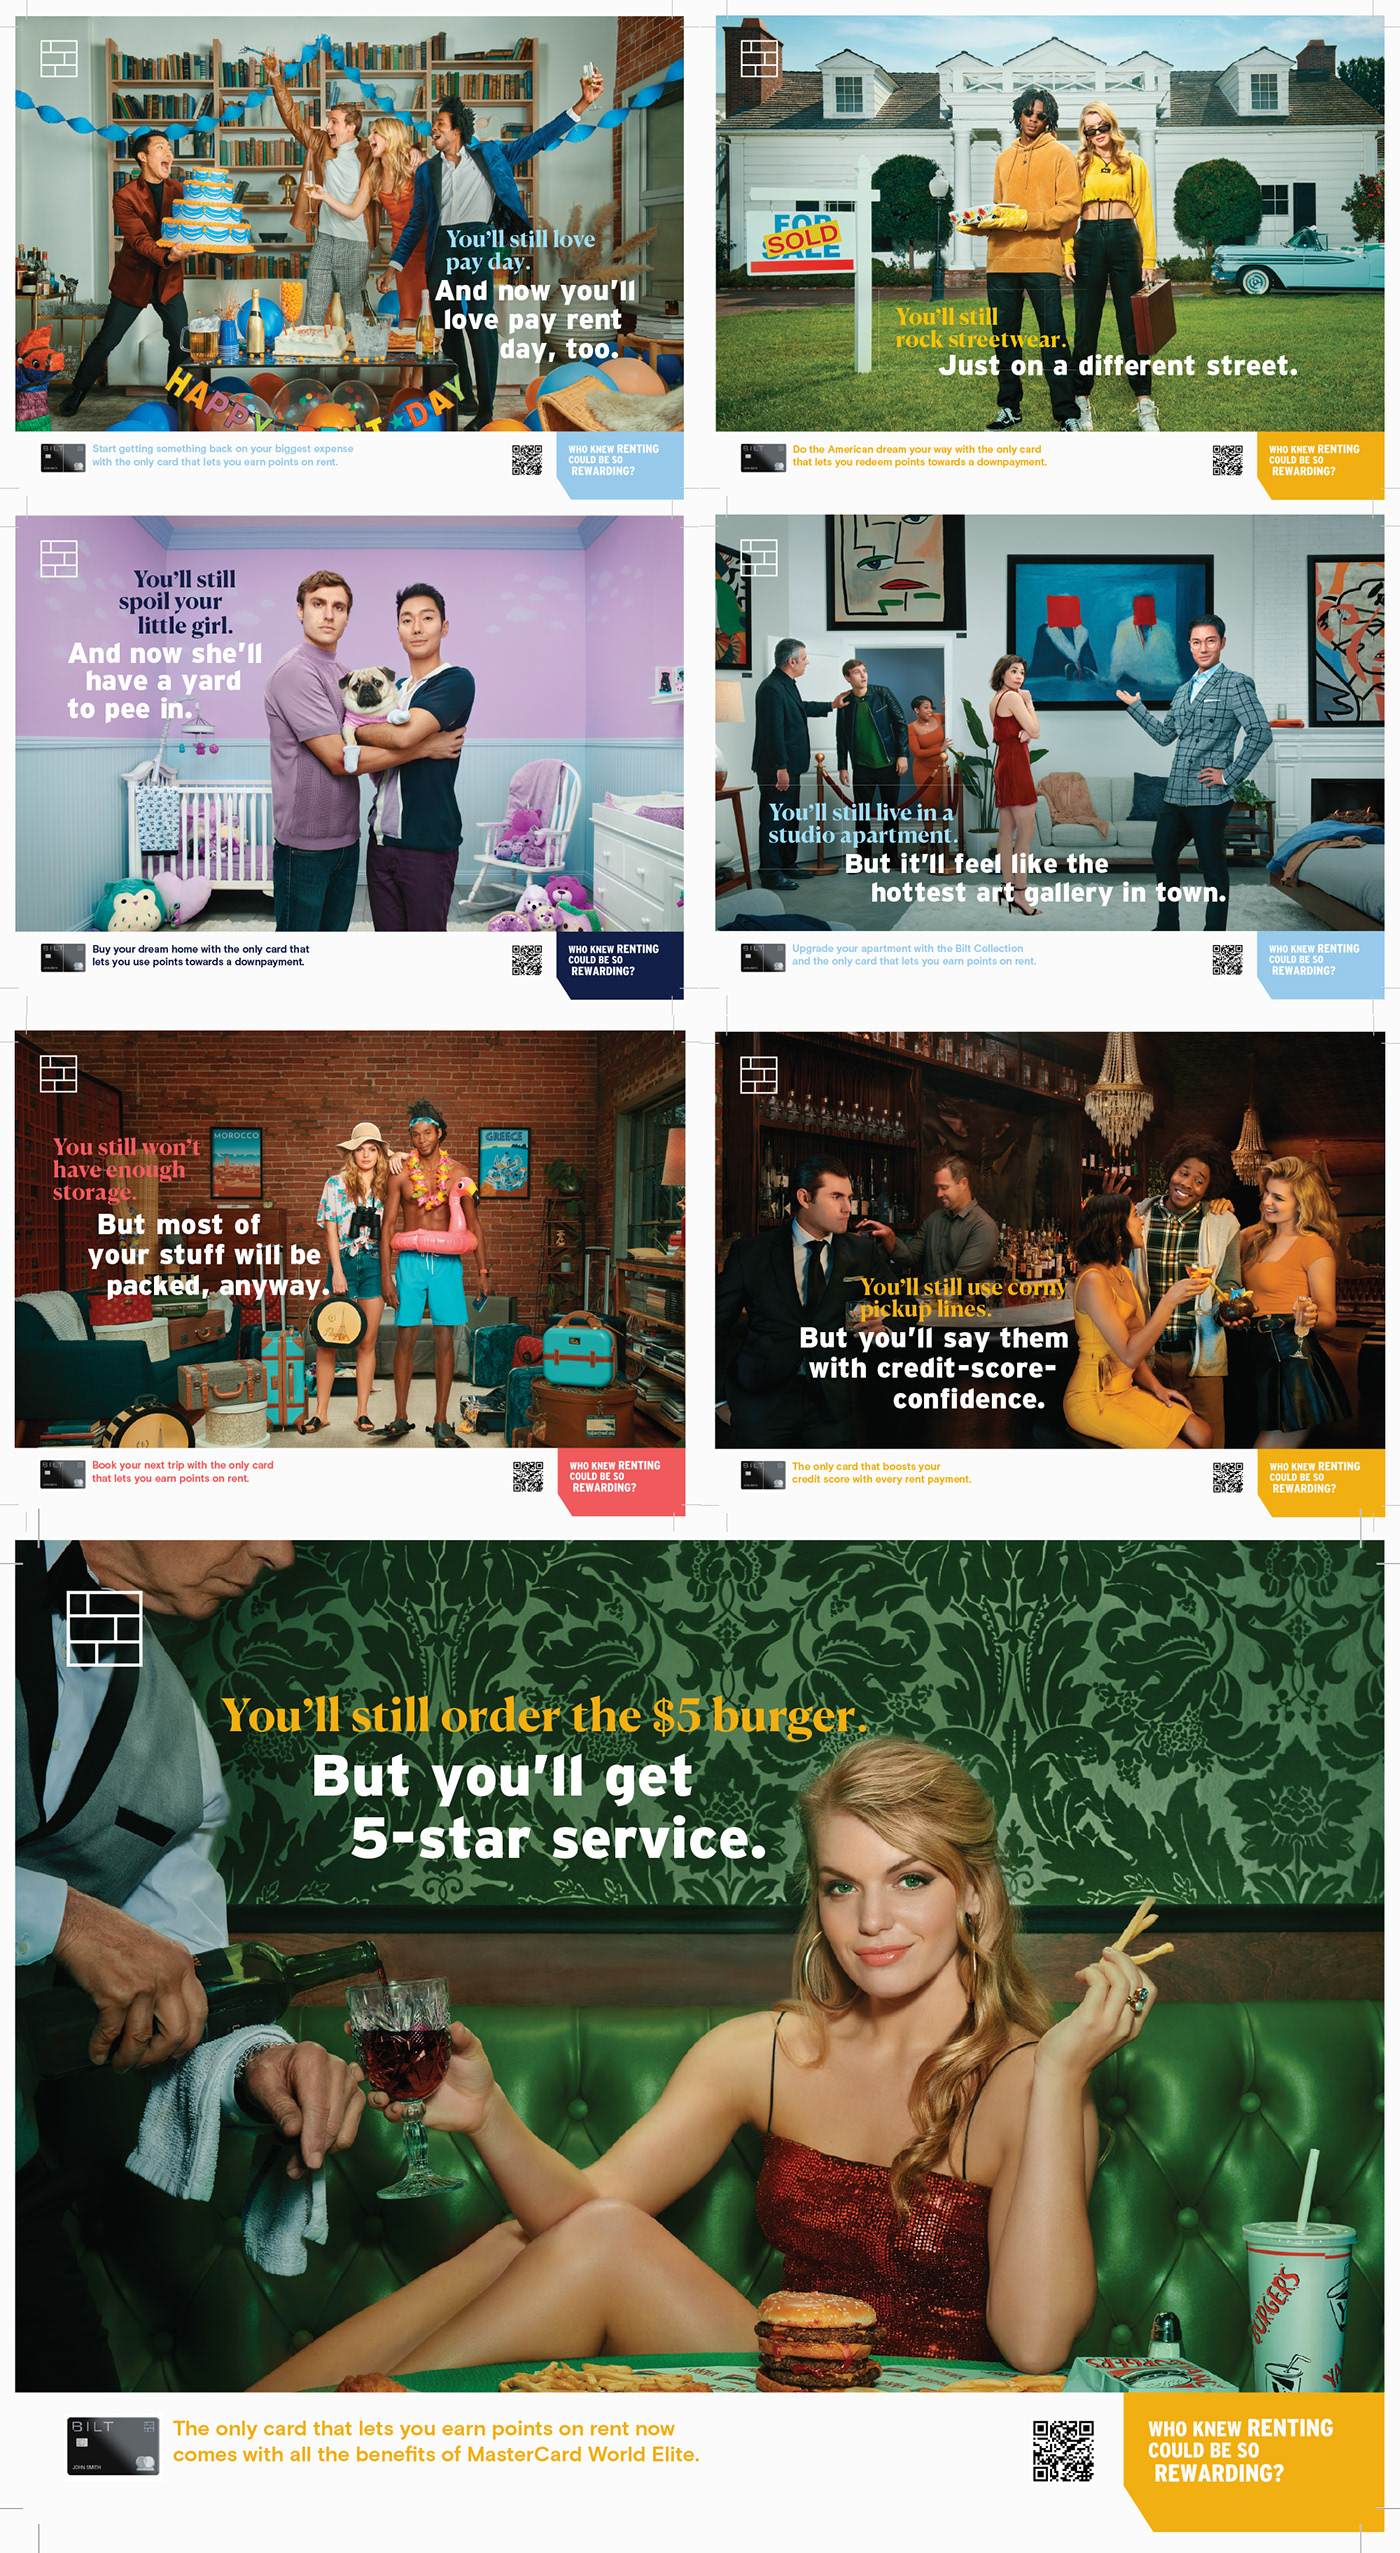 Advertising  banking campaign color story commercial dog fitech gay modern stylized